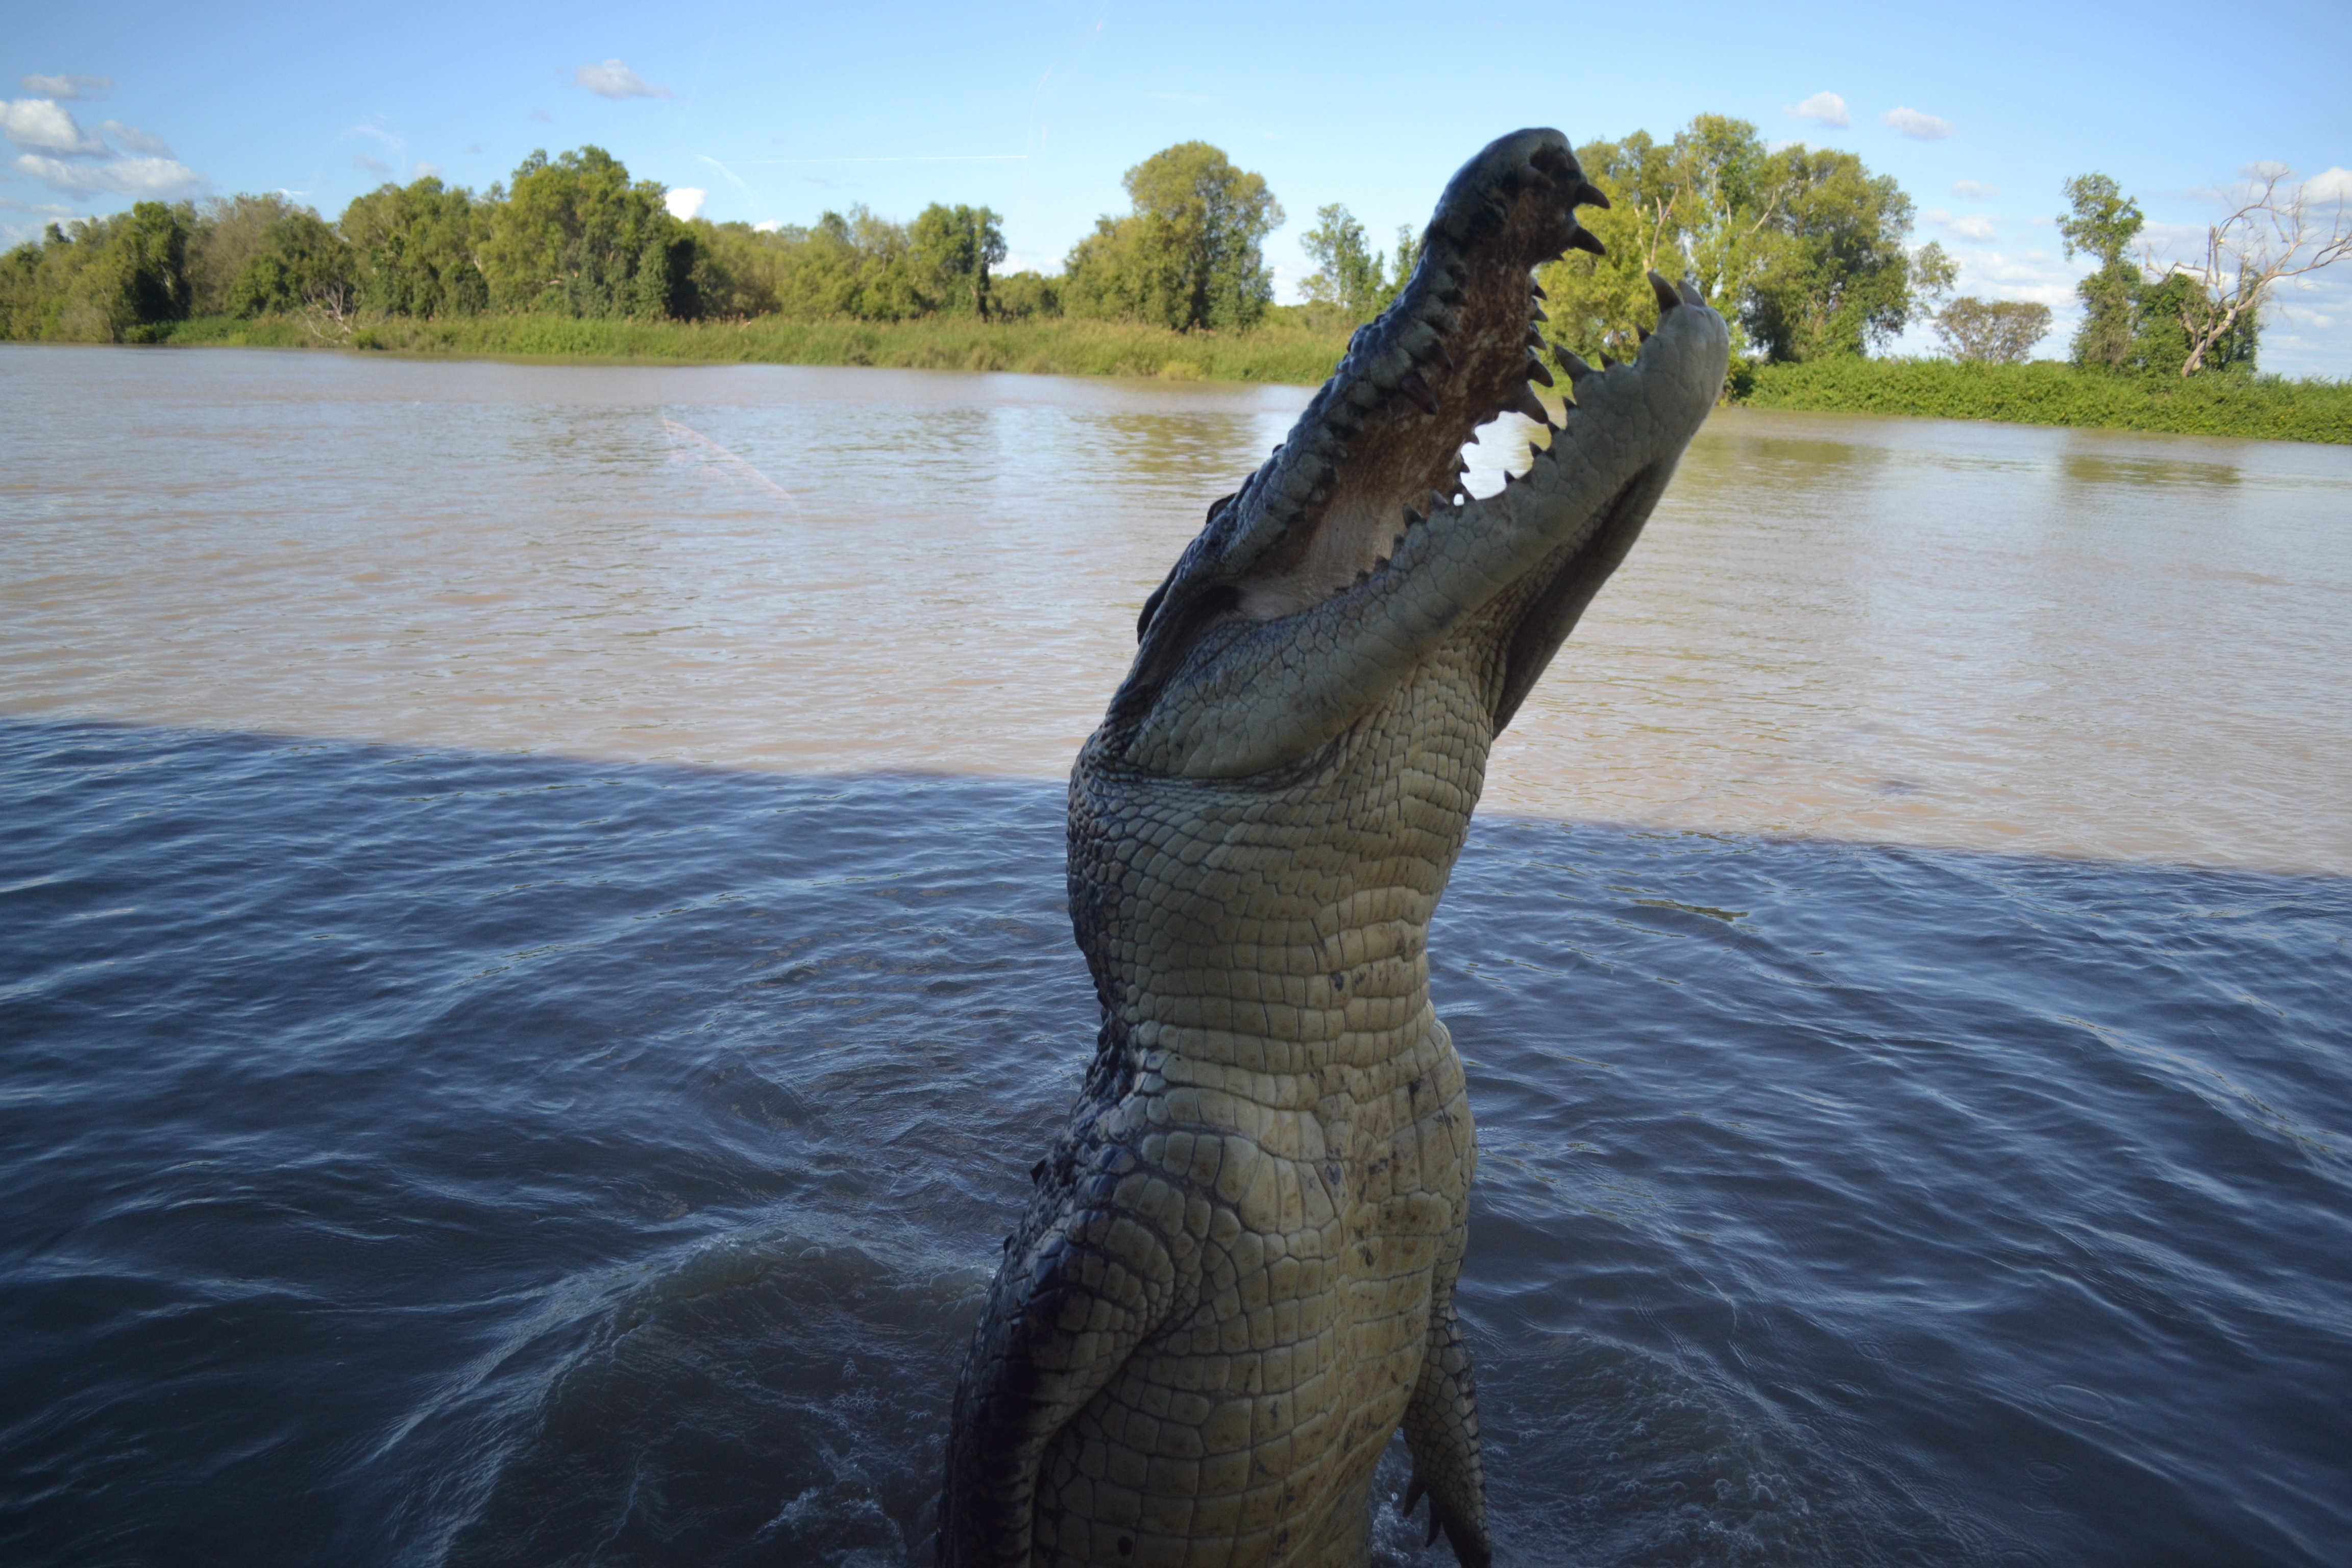 val plumwood a crocodile story This week we ponder on these issues in a program about val plumwood  philosophy and the natural world - val plumwood a crocodile pushed her out of her canoe.